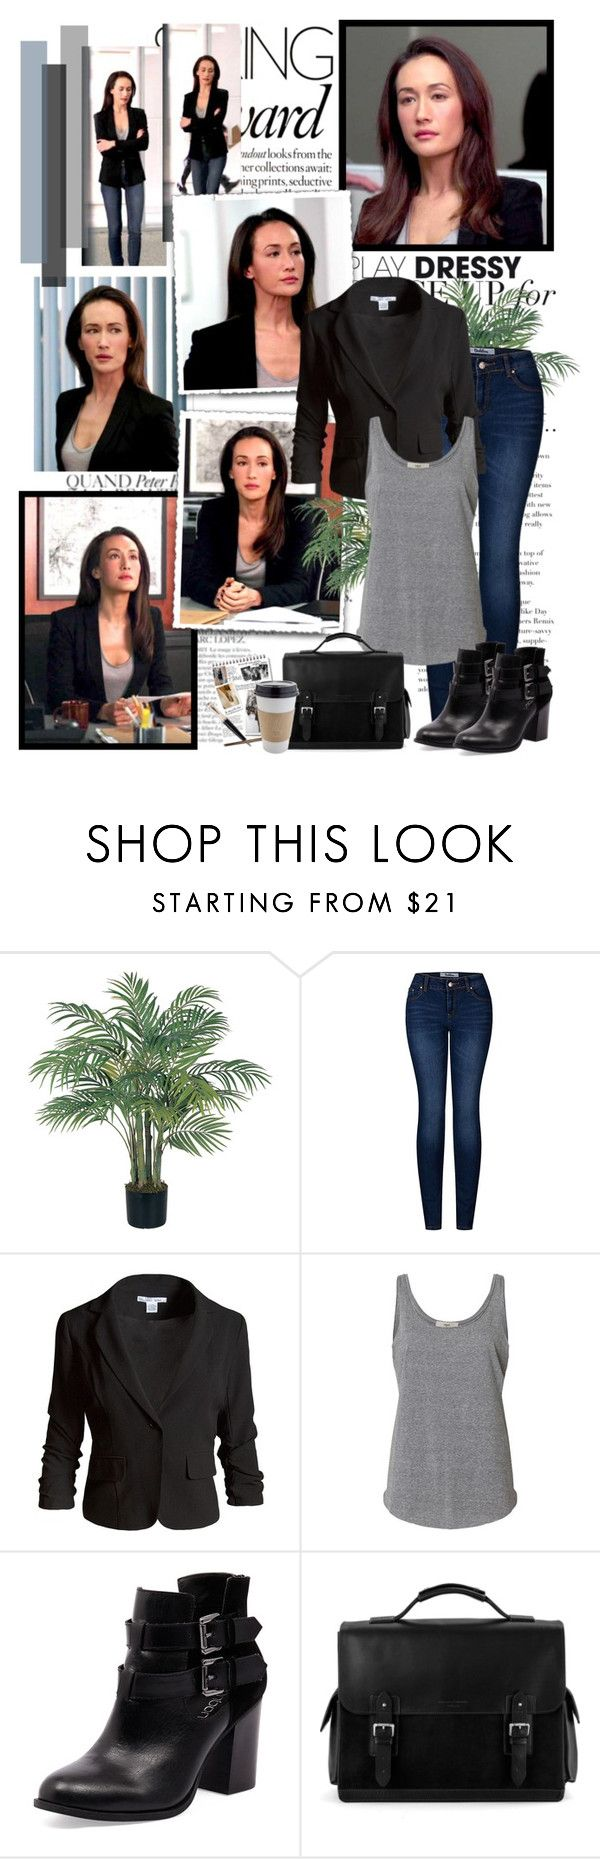 """""""Beth Davis"""" by productionkid ❤ liked on Polyvore featuring Bela, Nearly Natural, 2LUV, Sans Souci, Bonbons, Aspinal of London, Garance Doré, Mont Blanc, stalker and MaggieQ"""